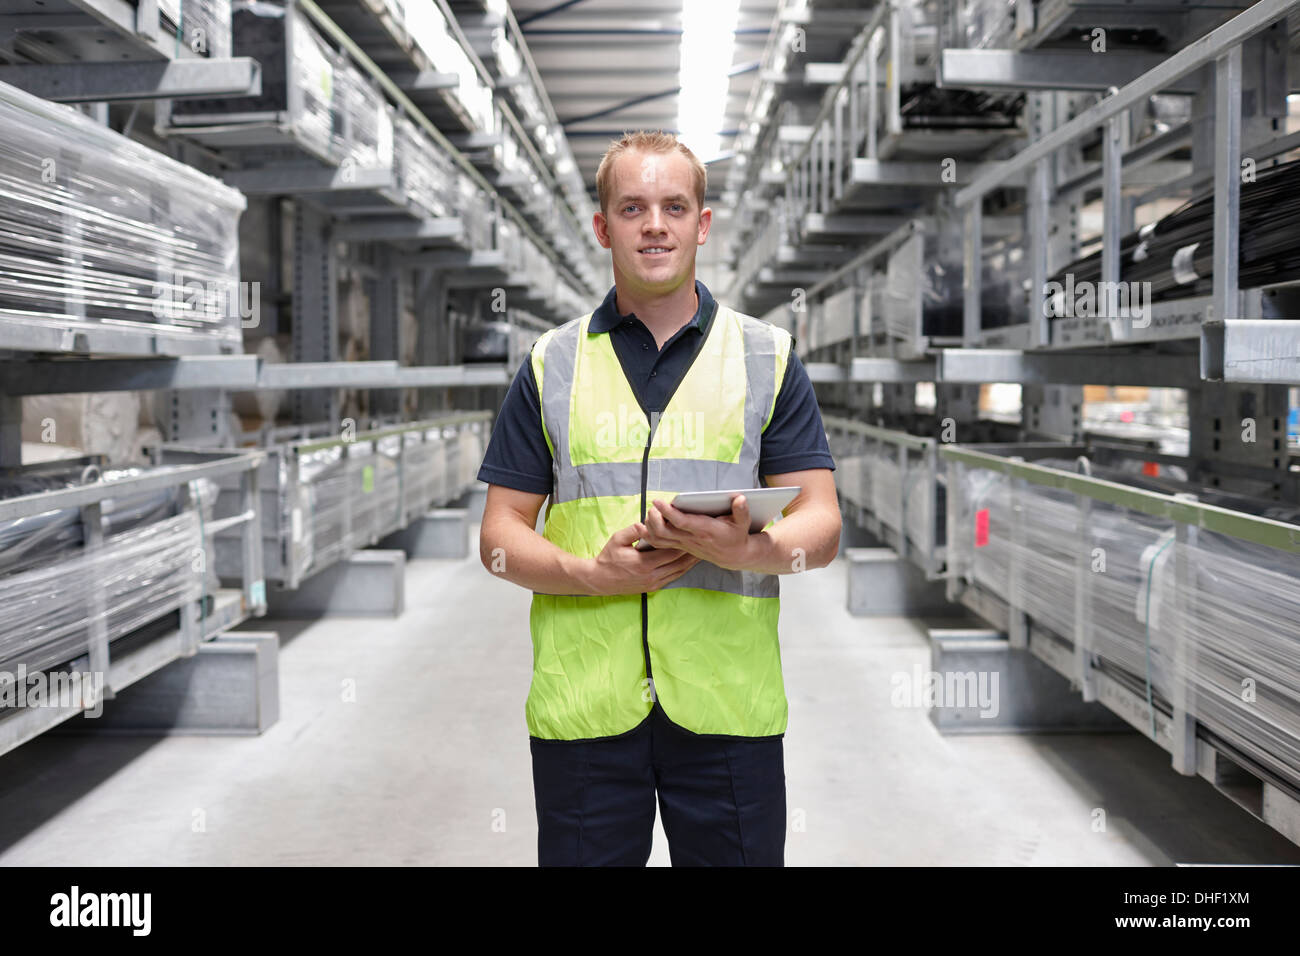 Portrait of worker in engineering warehouse - Stock Image